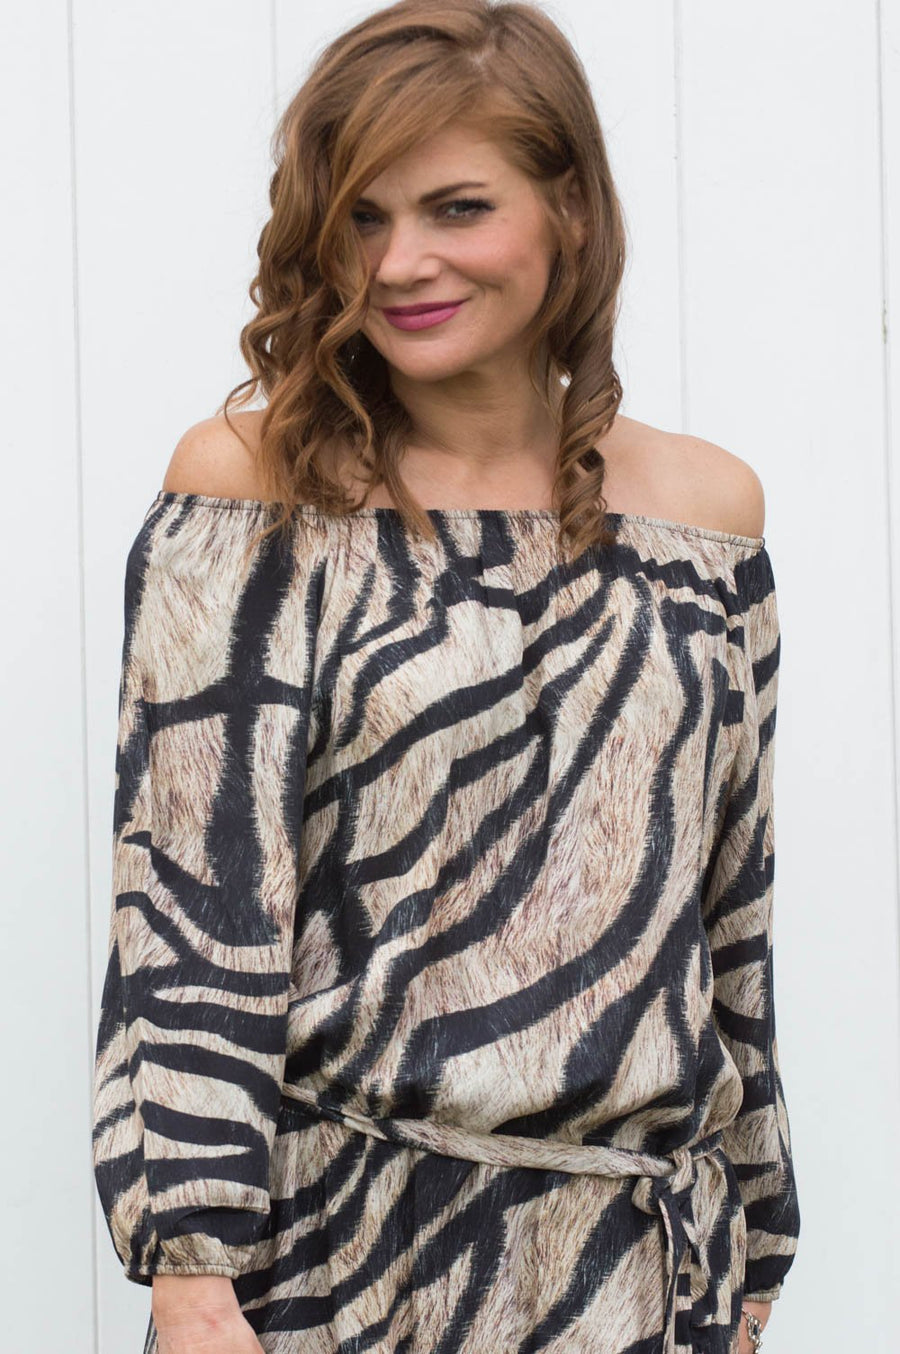 Beige Zebra Print Off The Shoulder Top - Mandy's Heaven